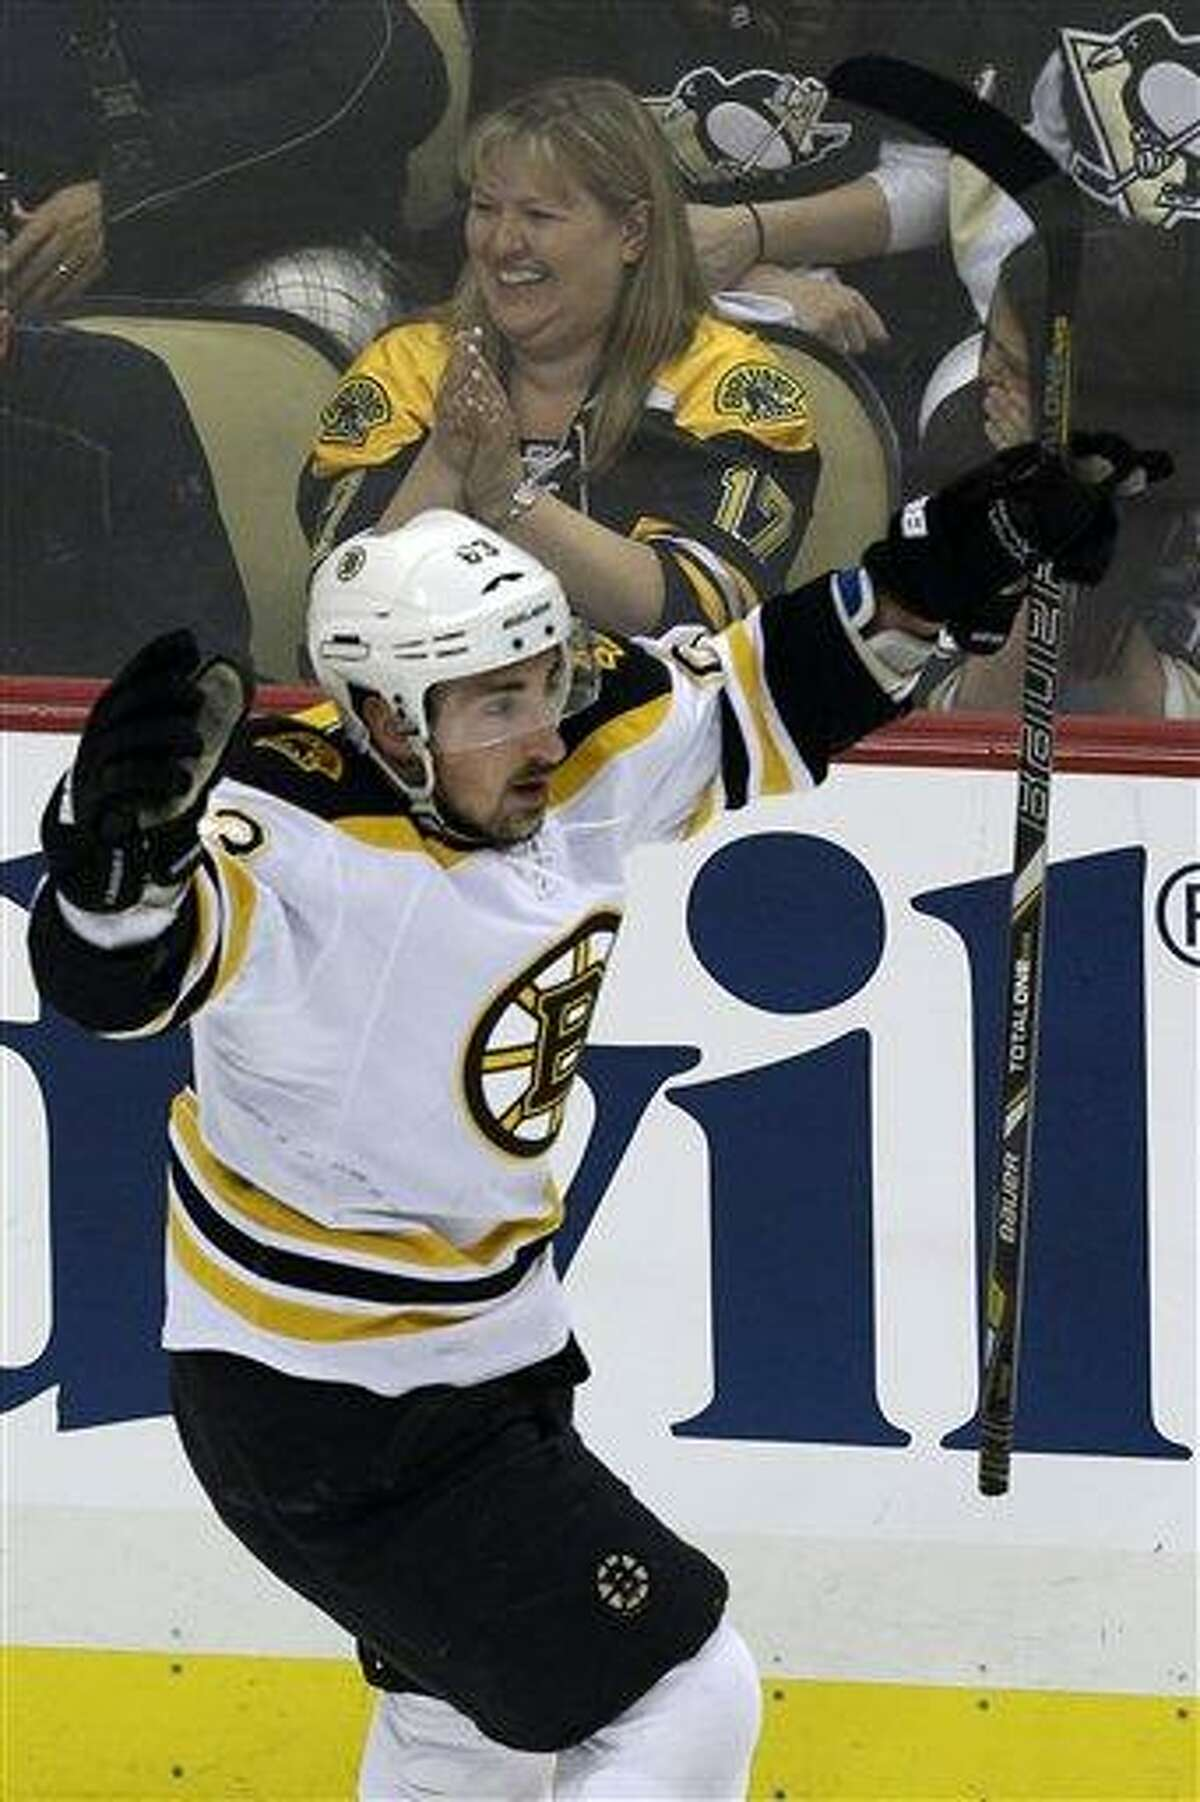 Boston Bruins' Brad Marchand (63)celebrates scoring in the first period of Game 2 of the NHL hockey Stanley Cup Eastern Conference finals against the Pittsburgh Penguins in Pittsburgh Monday, June 3, 2013.(AP Photo/Gene J. Puskar)